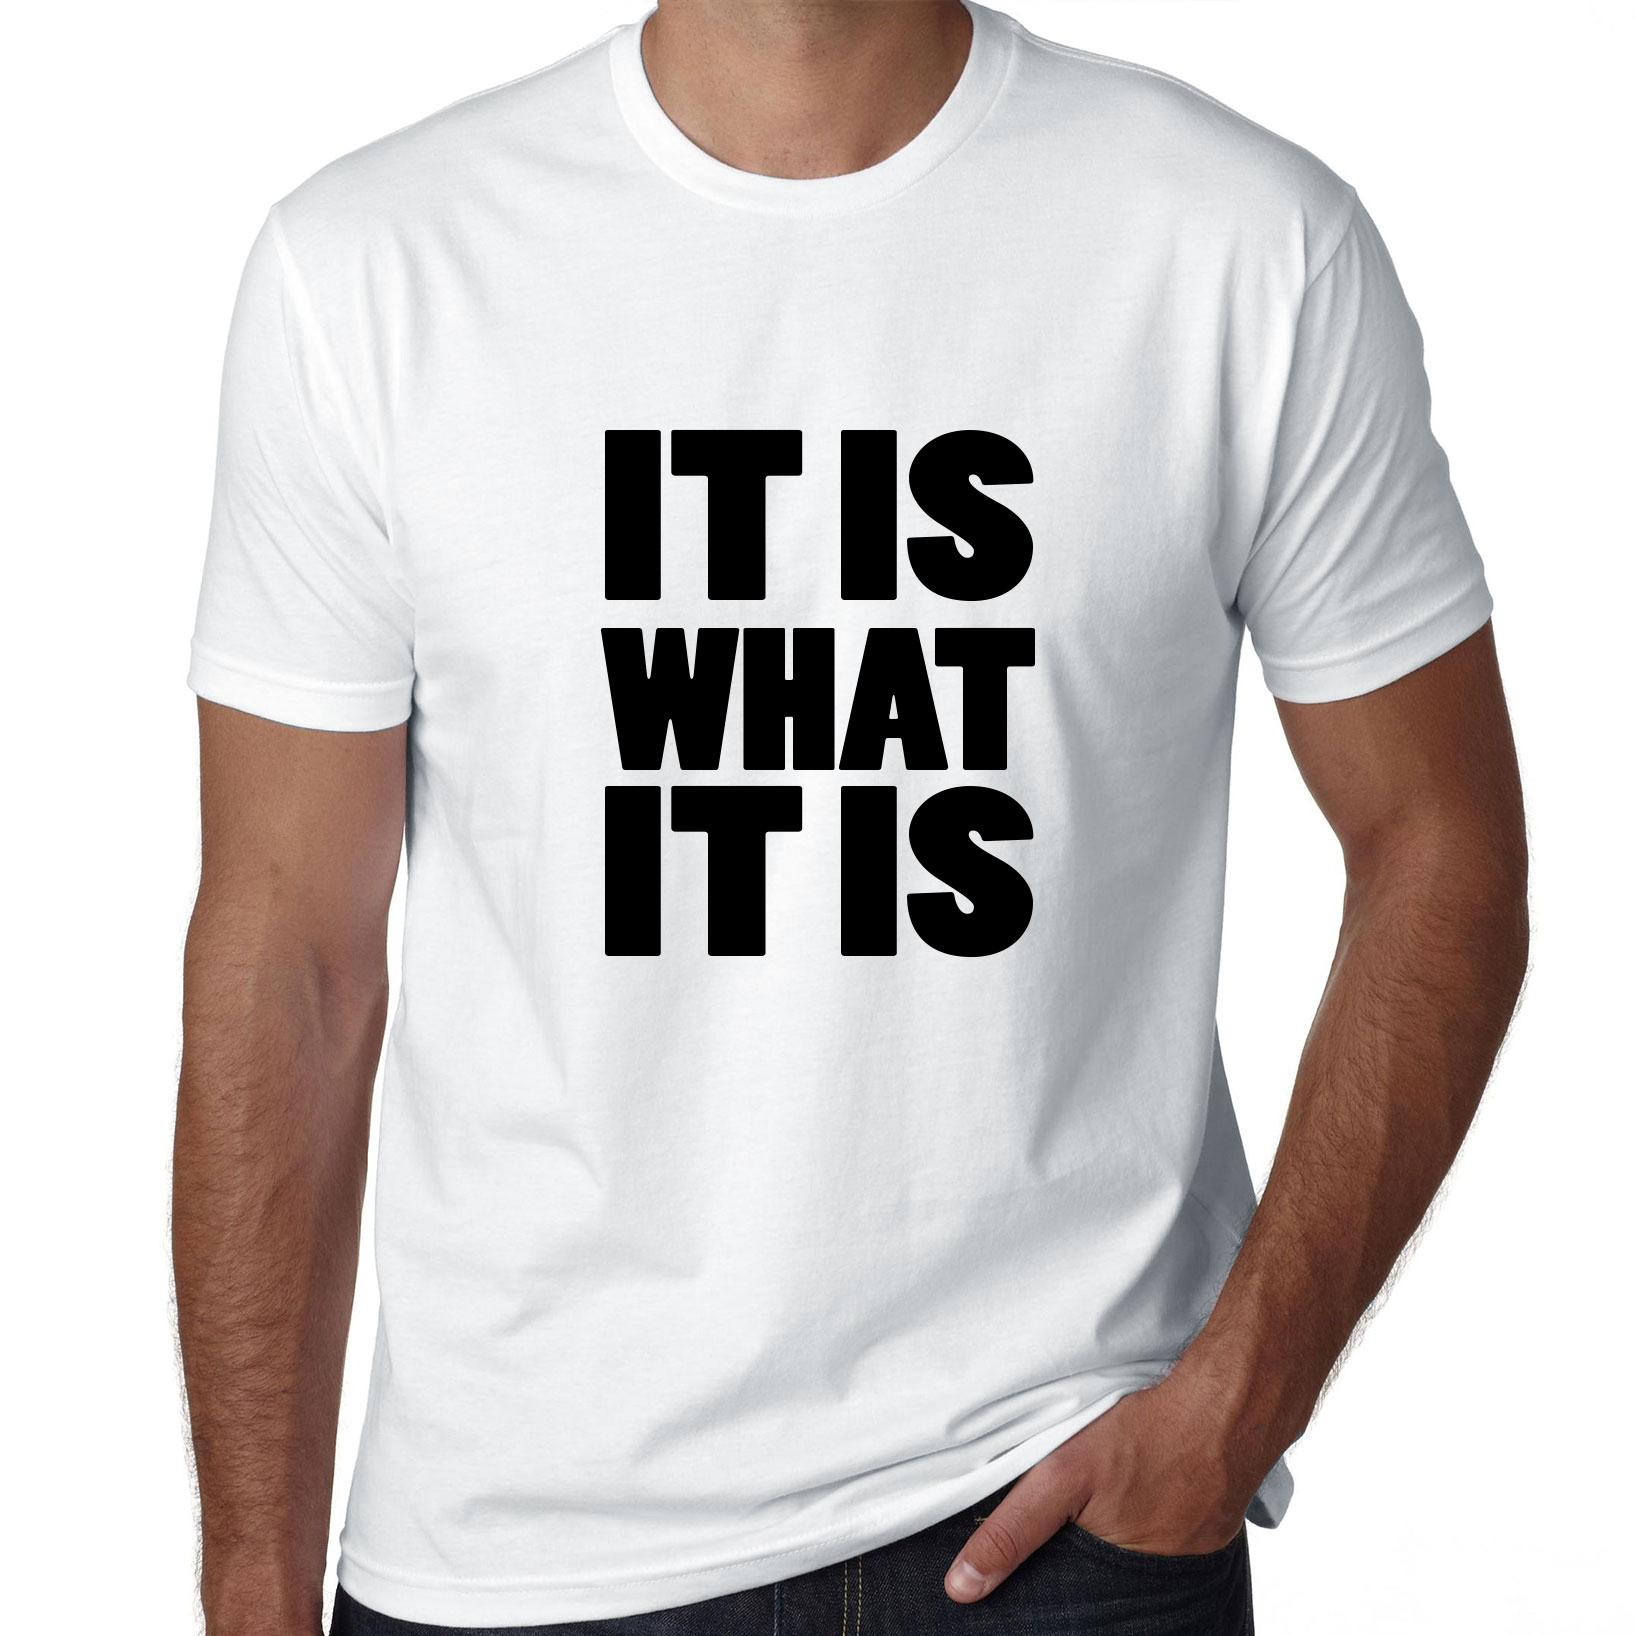 It Is What It Is - Large Print Graphic Men's T-Shirt